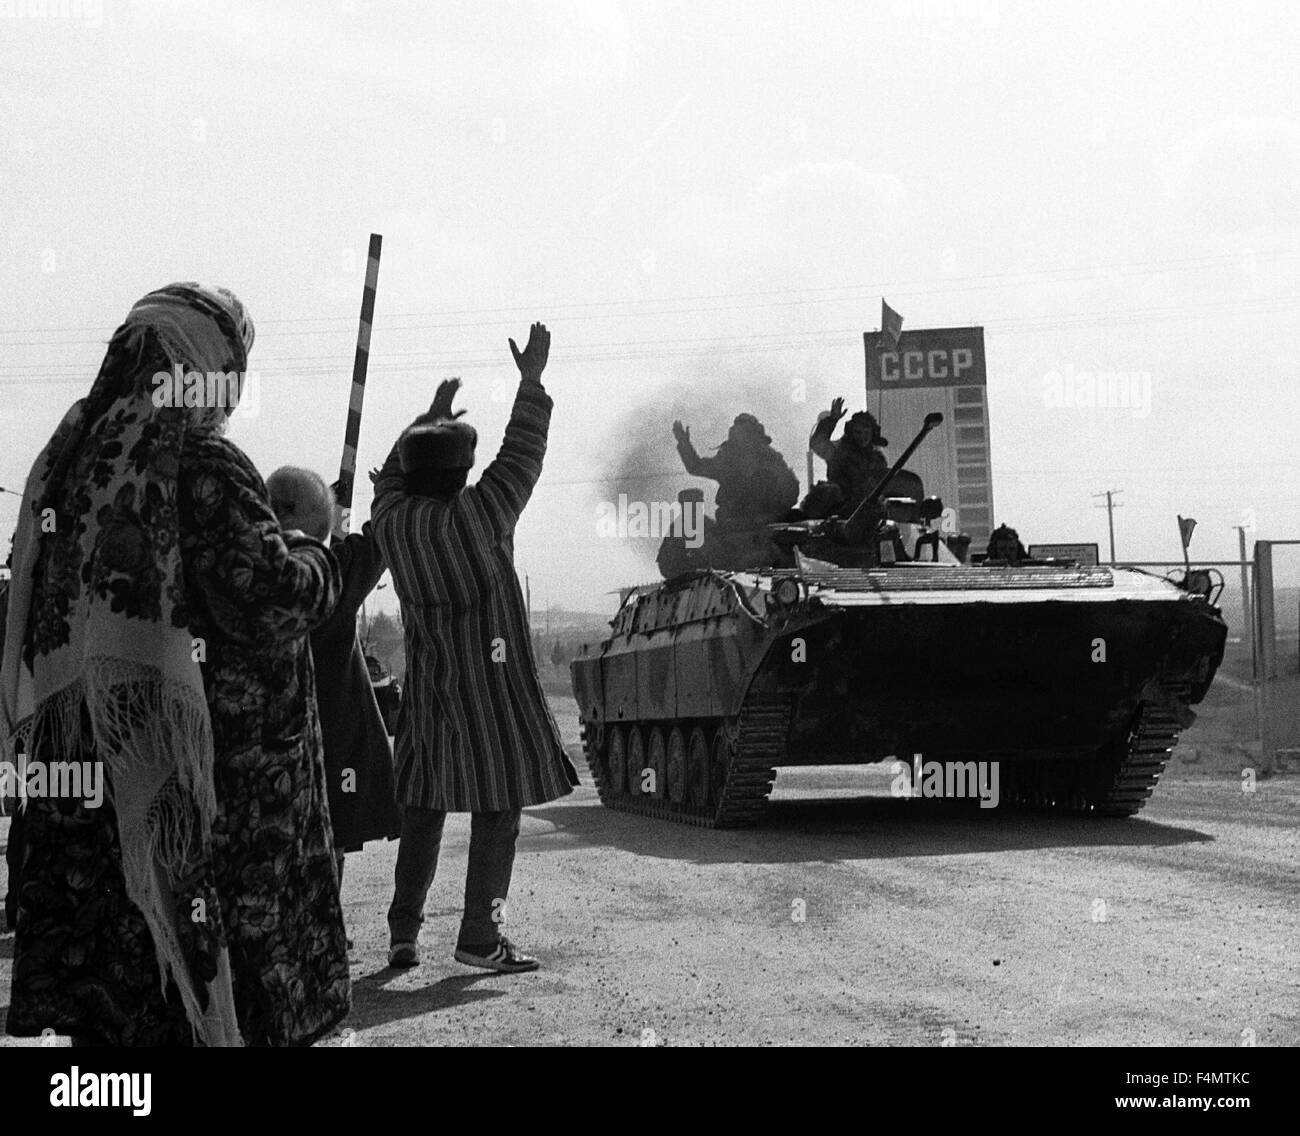 Soviet Afghanistan war - Page 6 Ussr-termez-withdrawal-of-soviet-forces-from-afghanistan-soldiers-F4MTKC